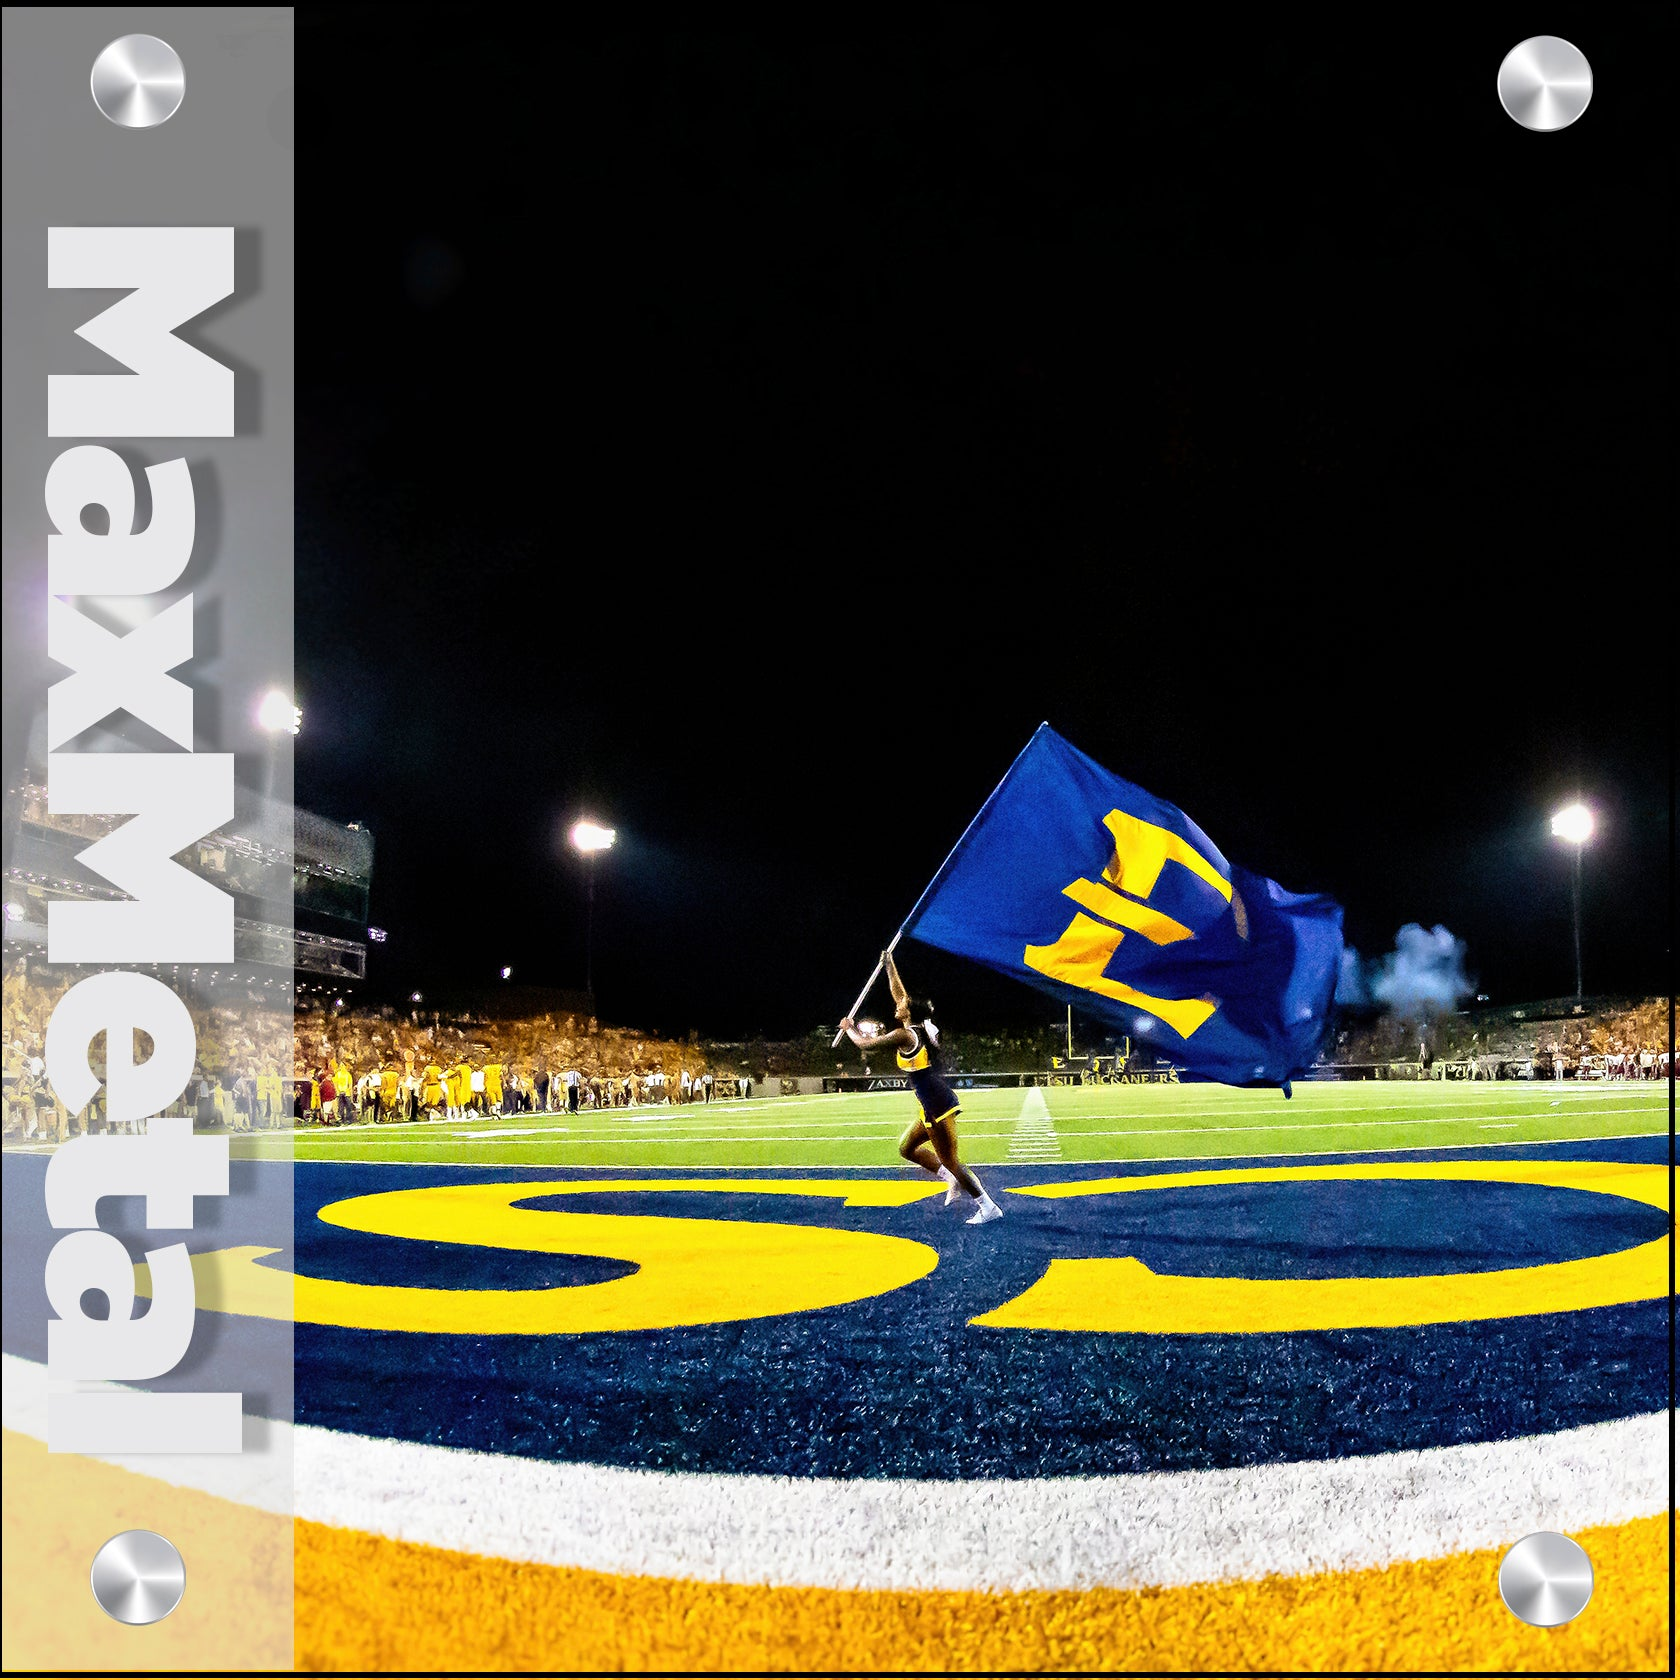 East Tennessee State University - Metal Photo Prints